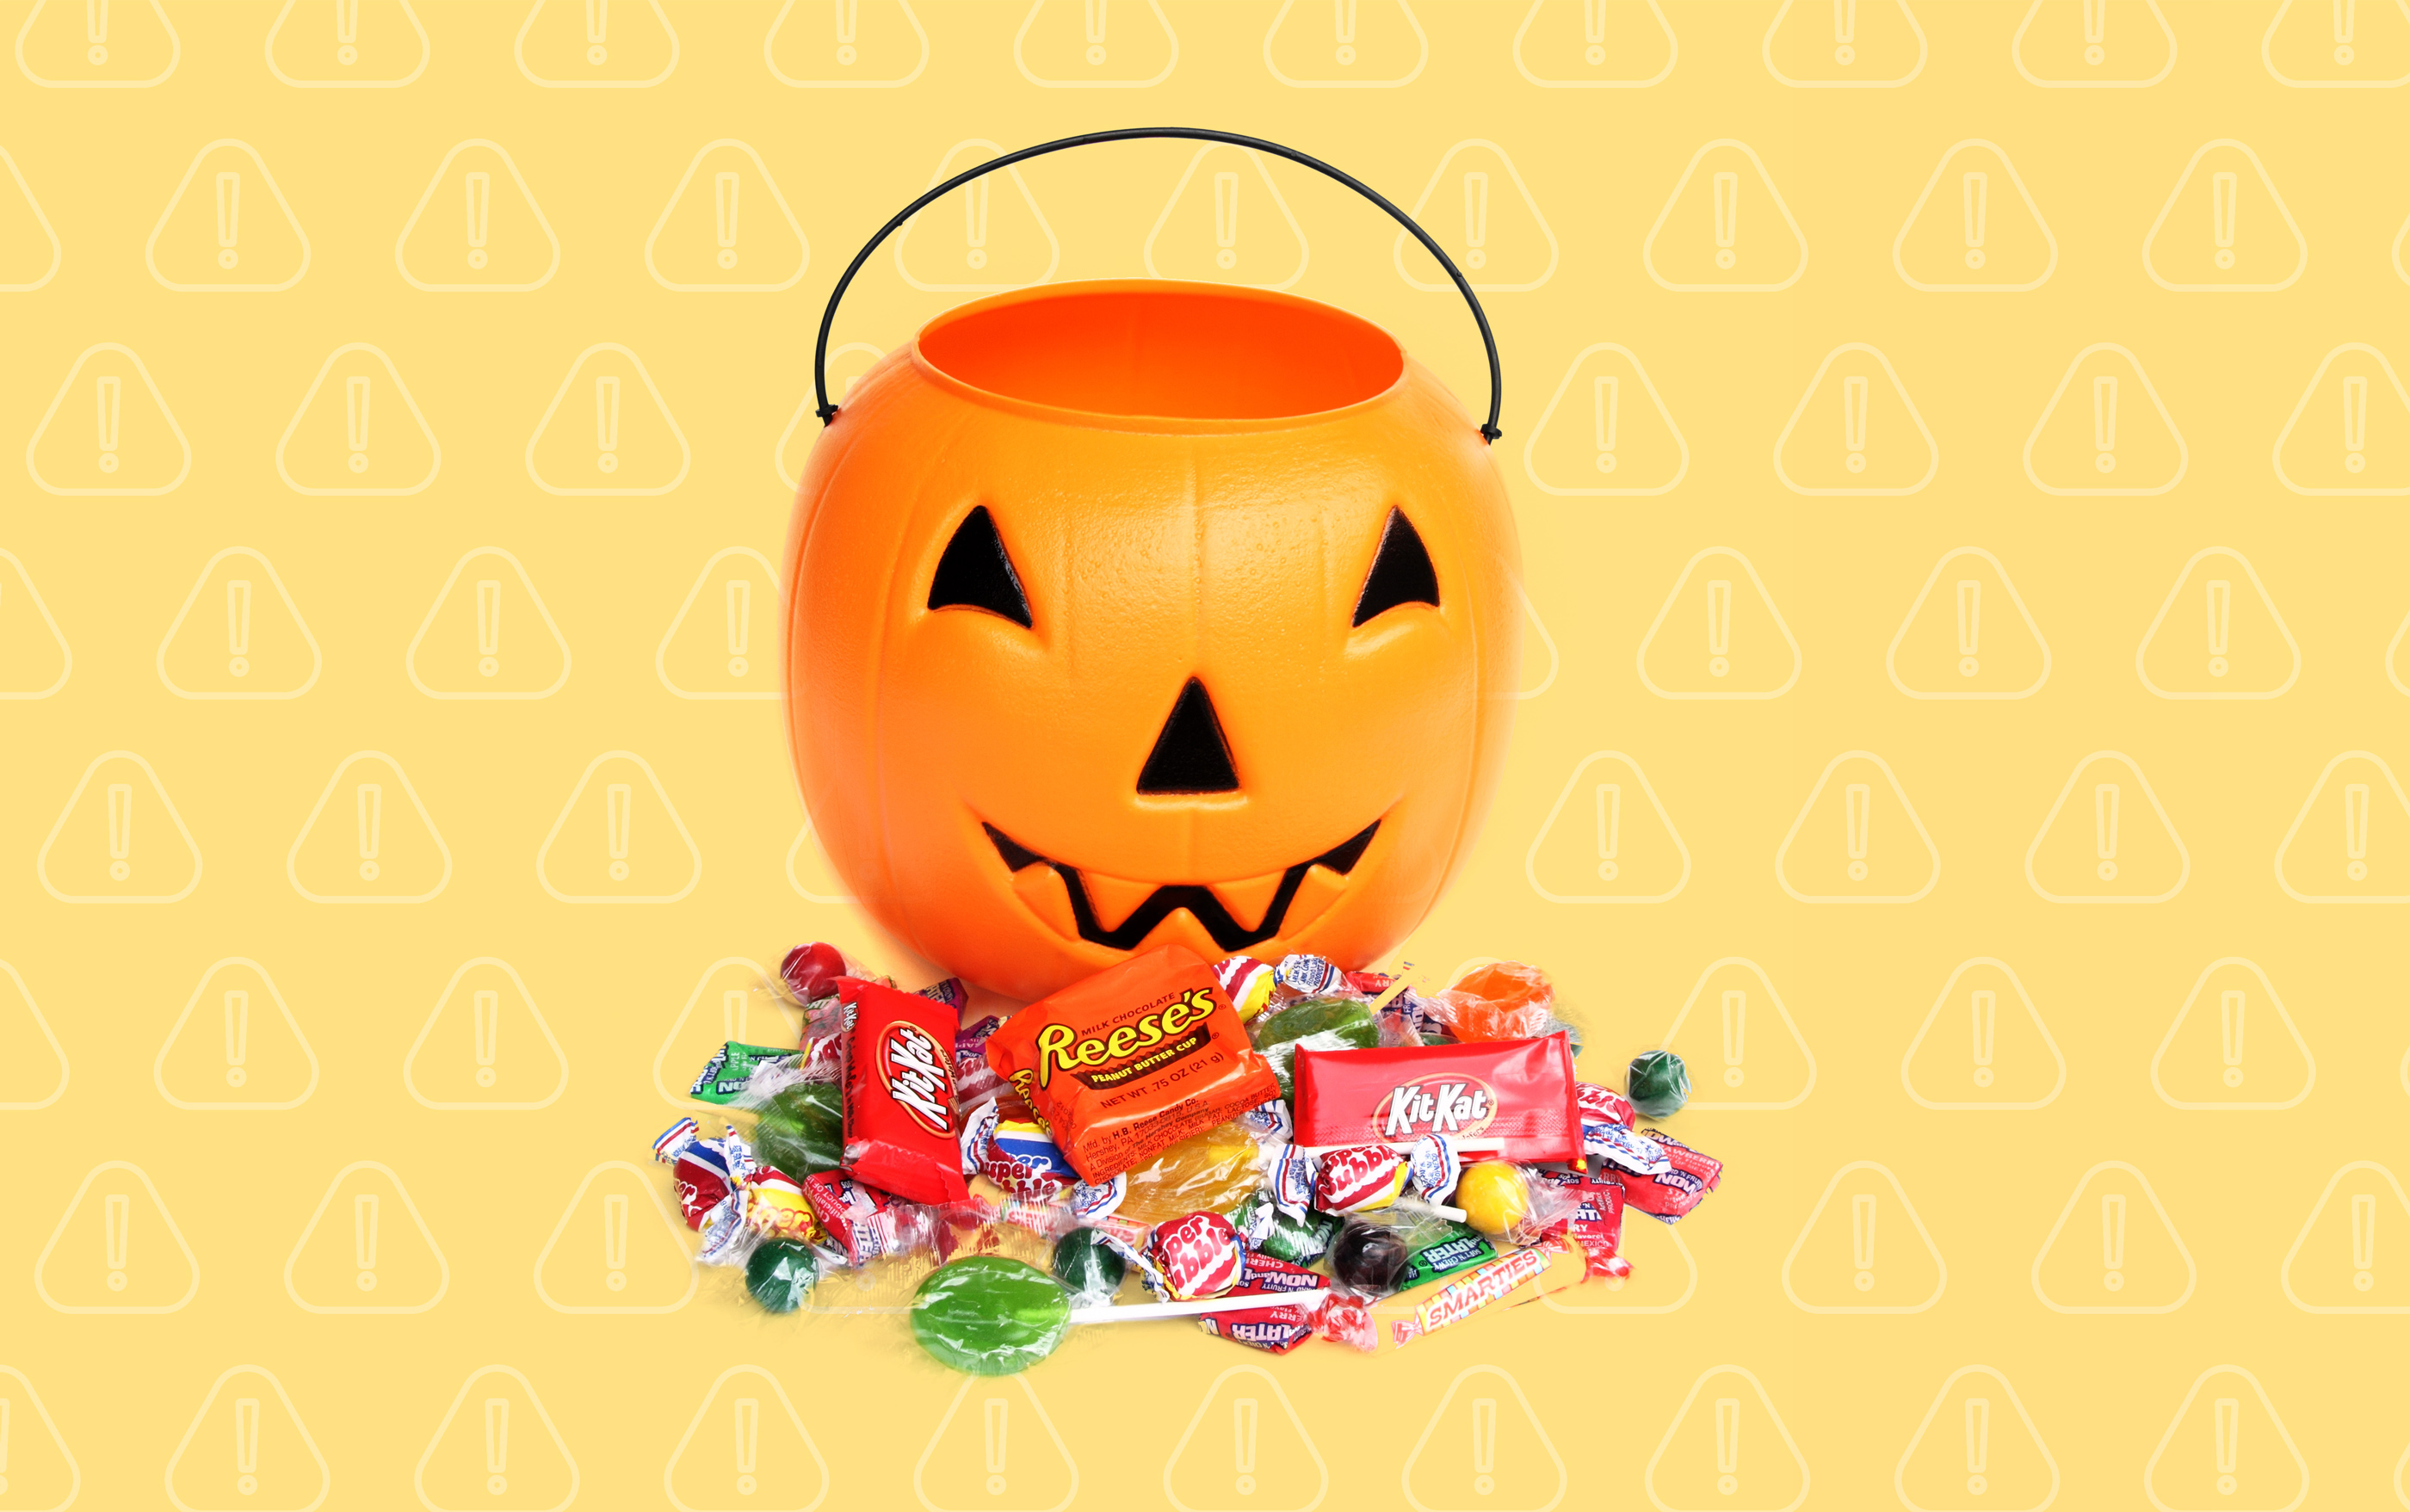 Police Department Warns to Check Kids Candy for THC This Halloween